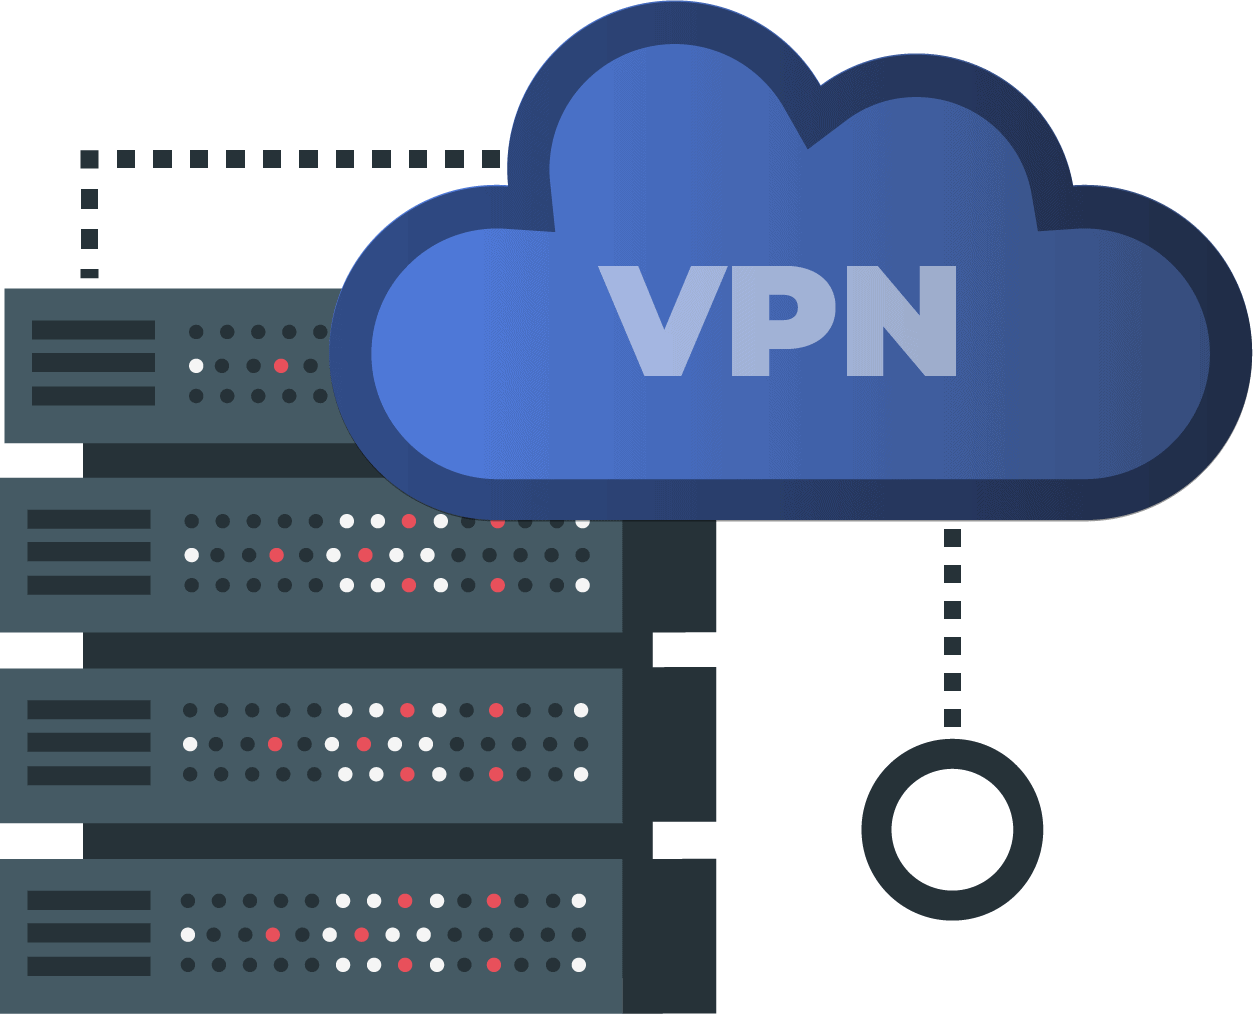 What are VPN Endpoints